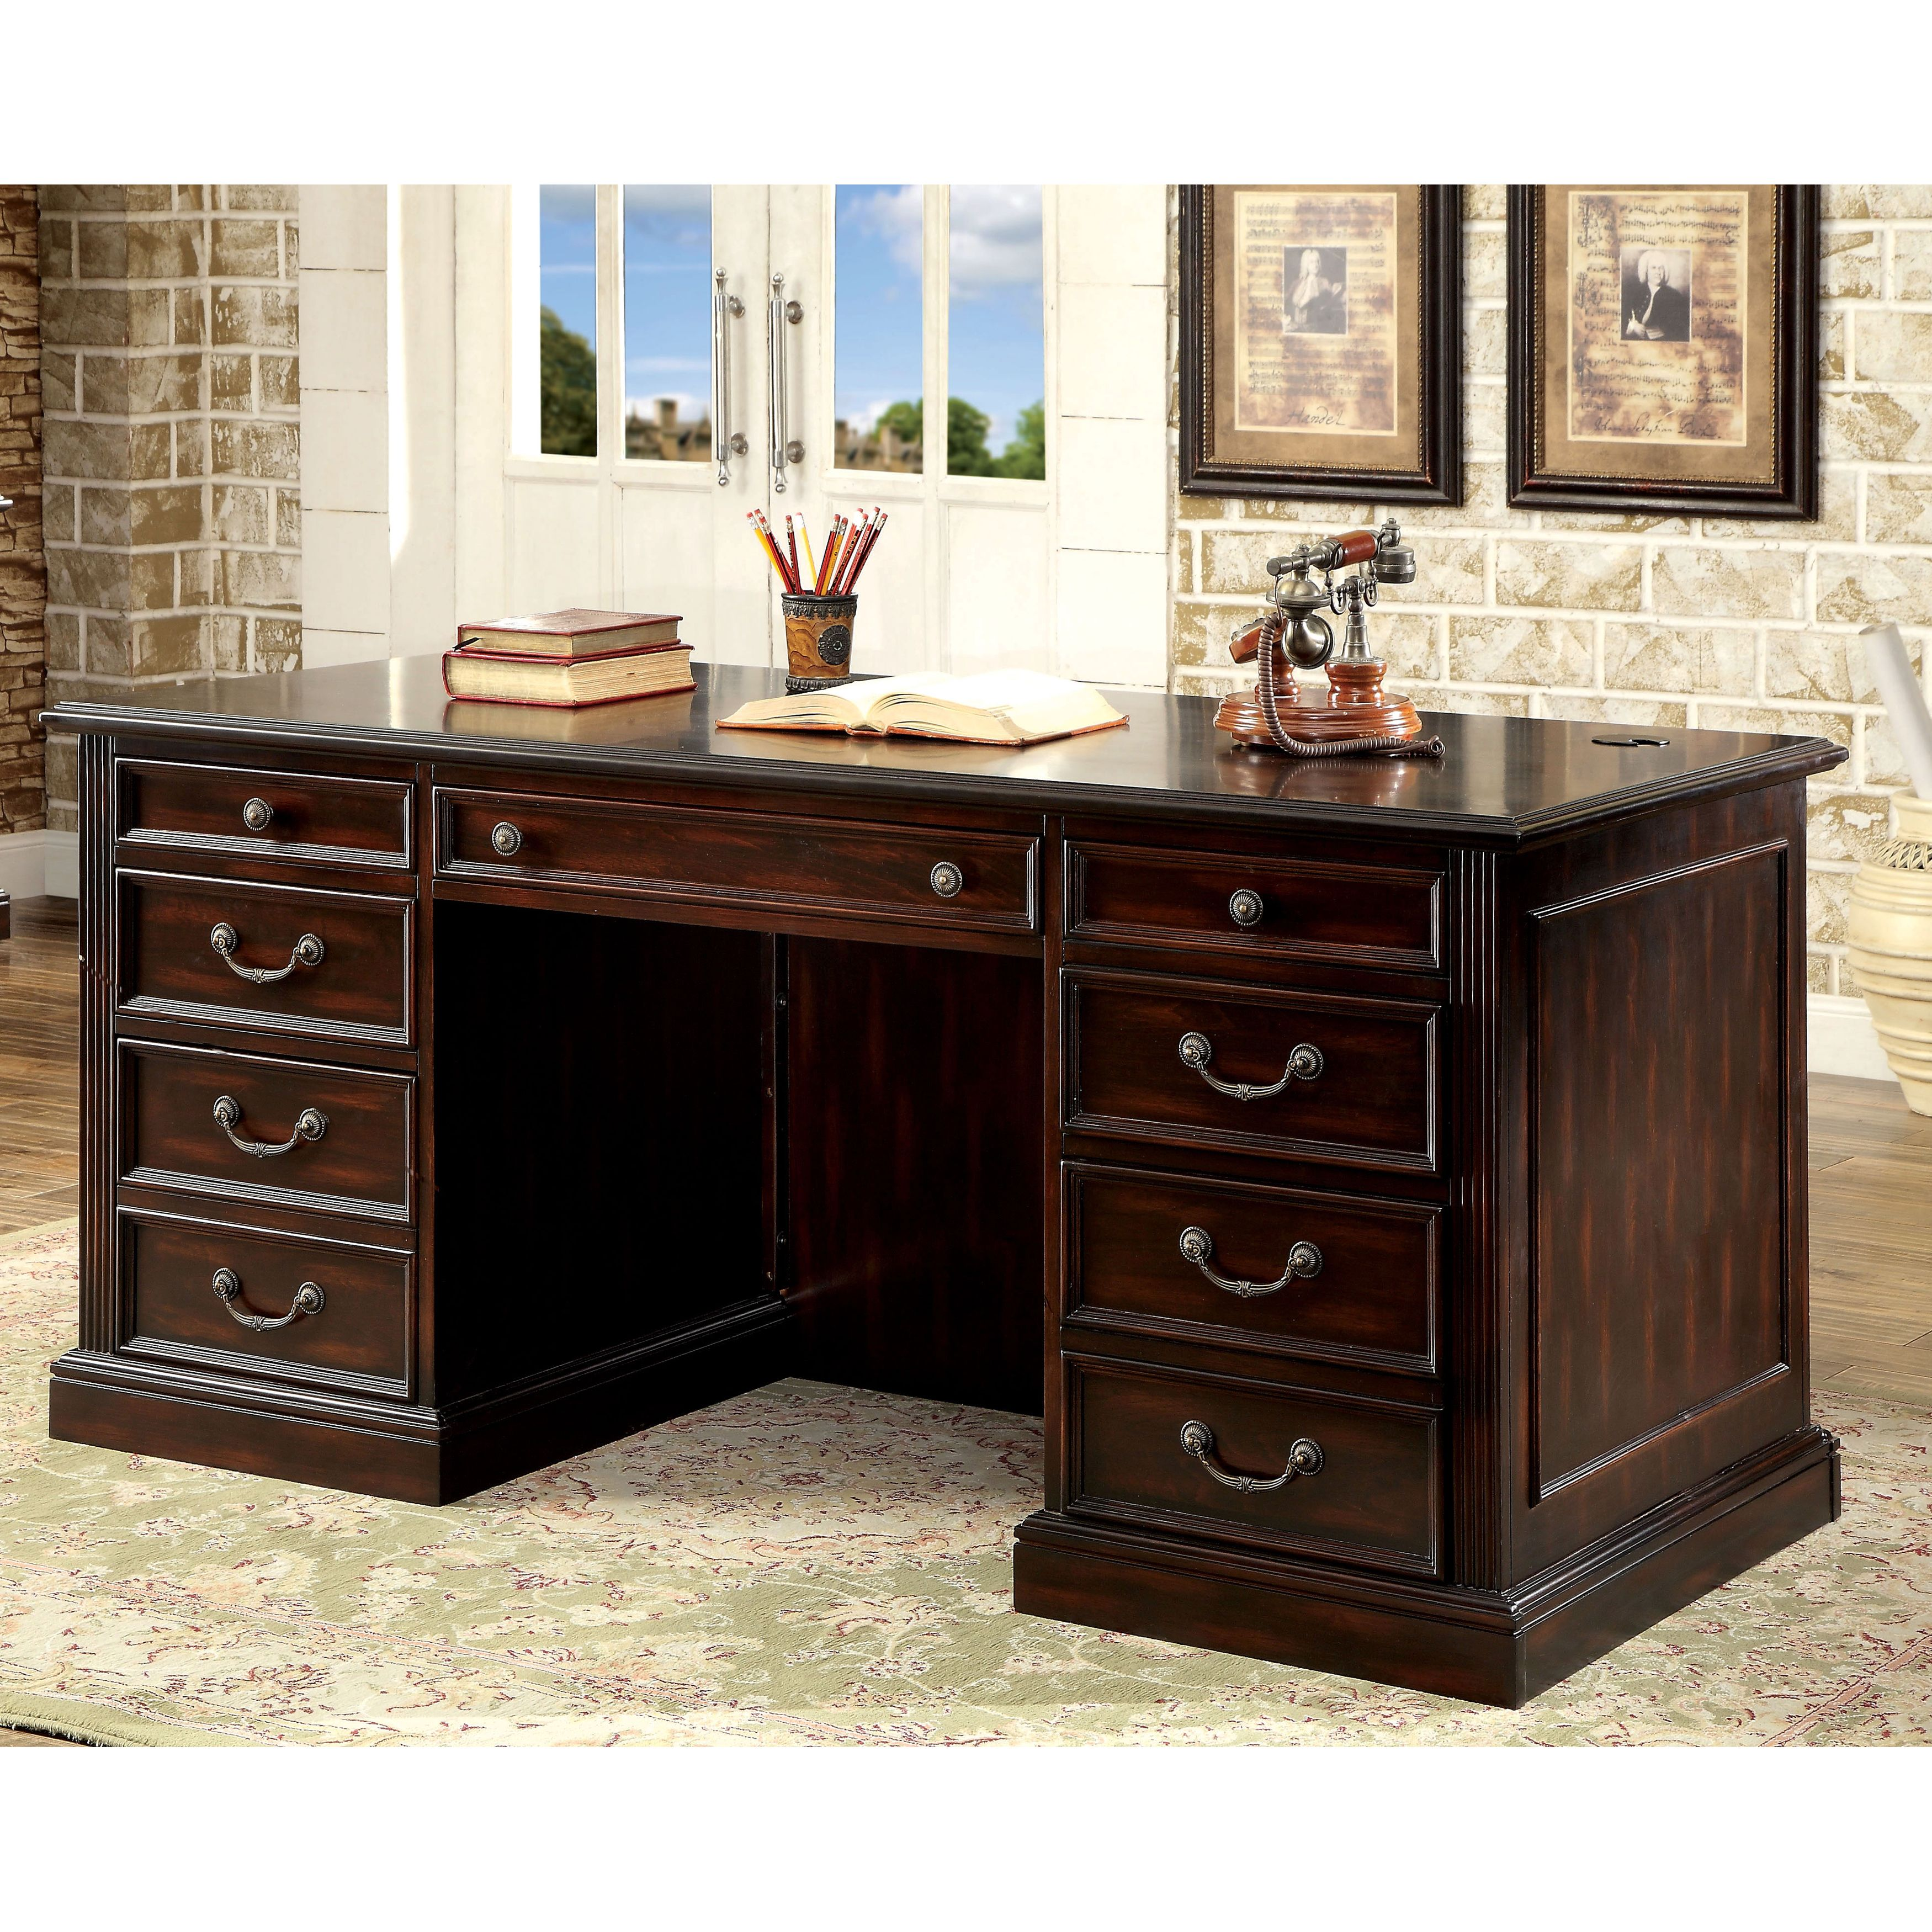 For The Traditional Work At Home Setting, This Charming Executive Desk Is  The